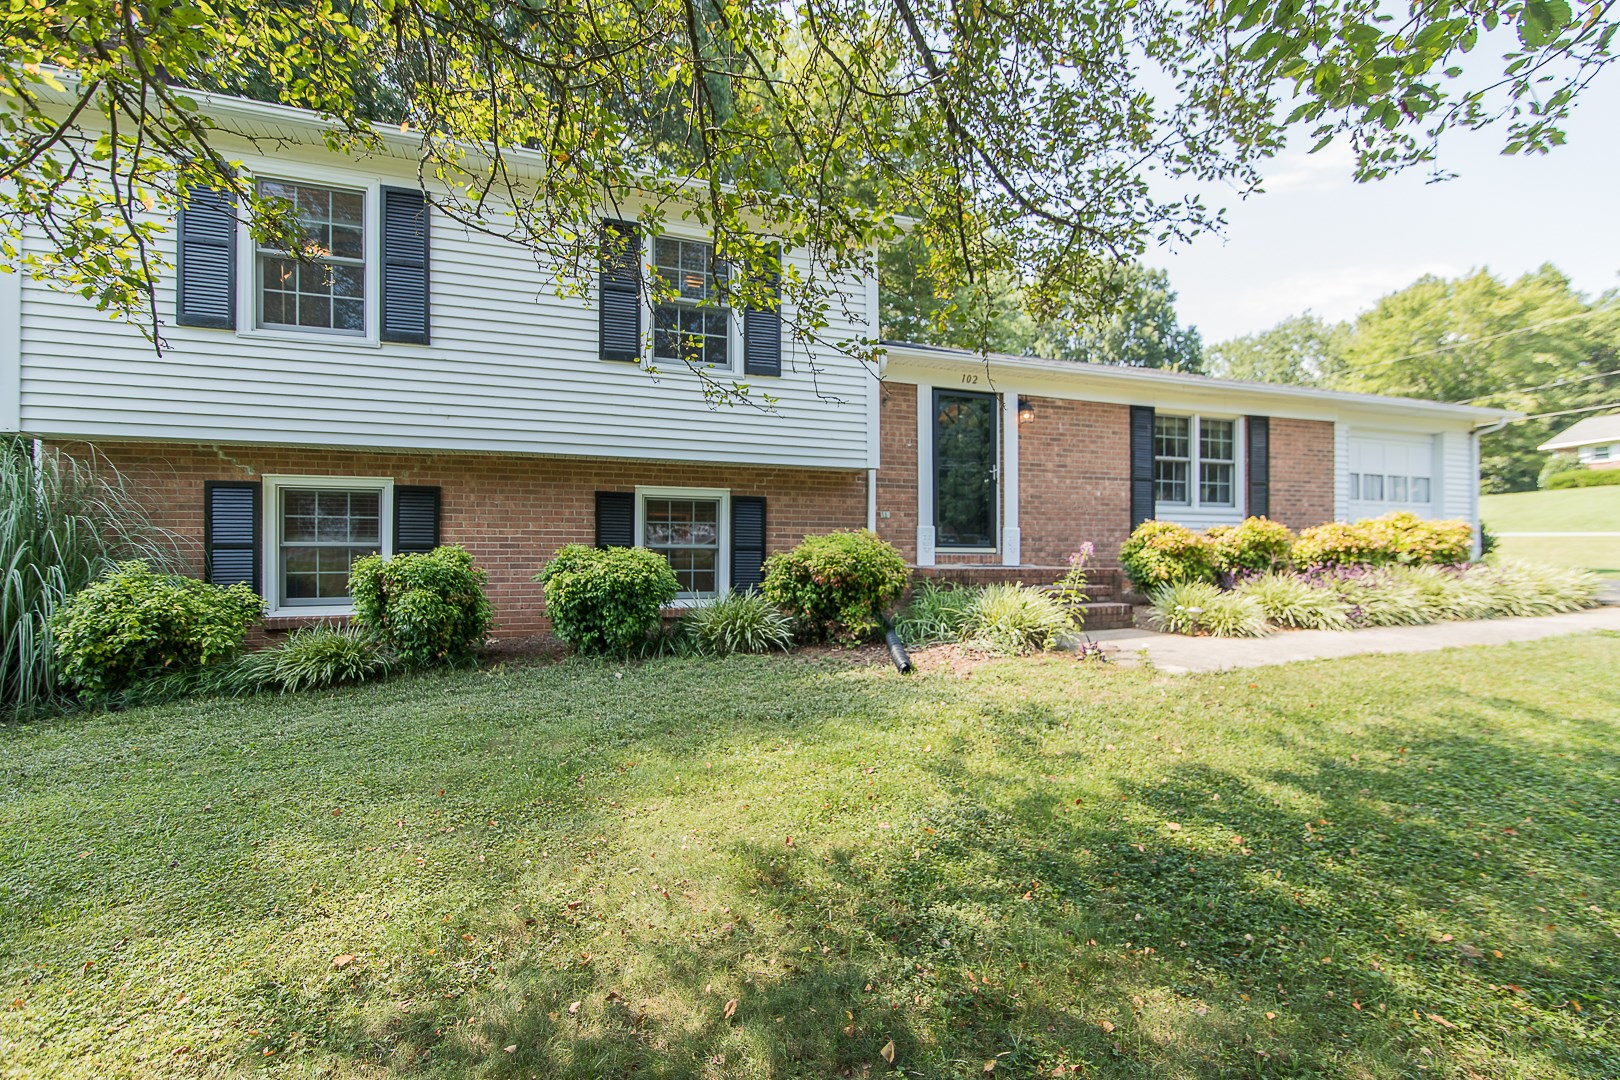 Home in King, NC with 3 bdrms 2.5 bath, Excellent Location